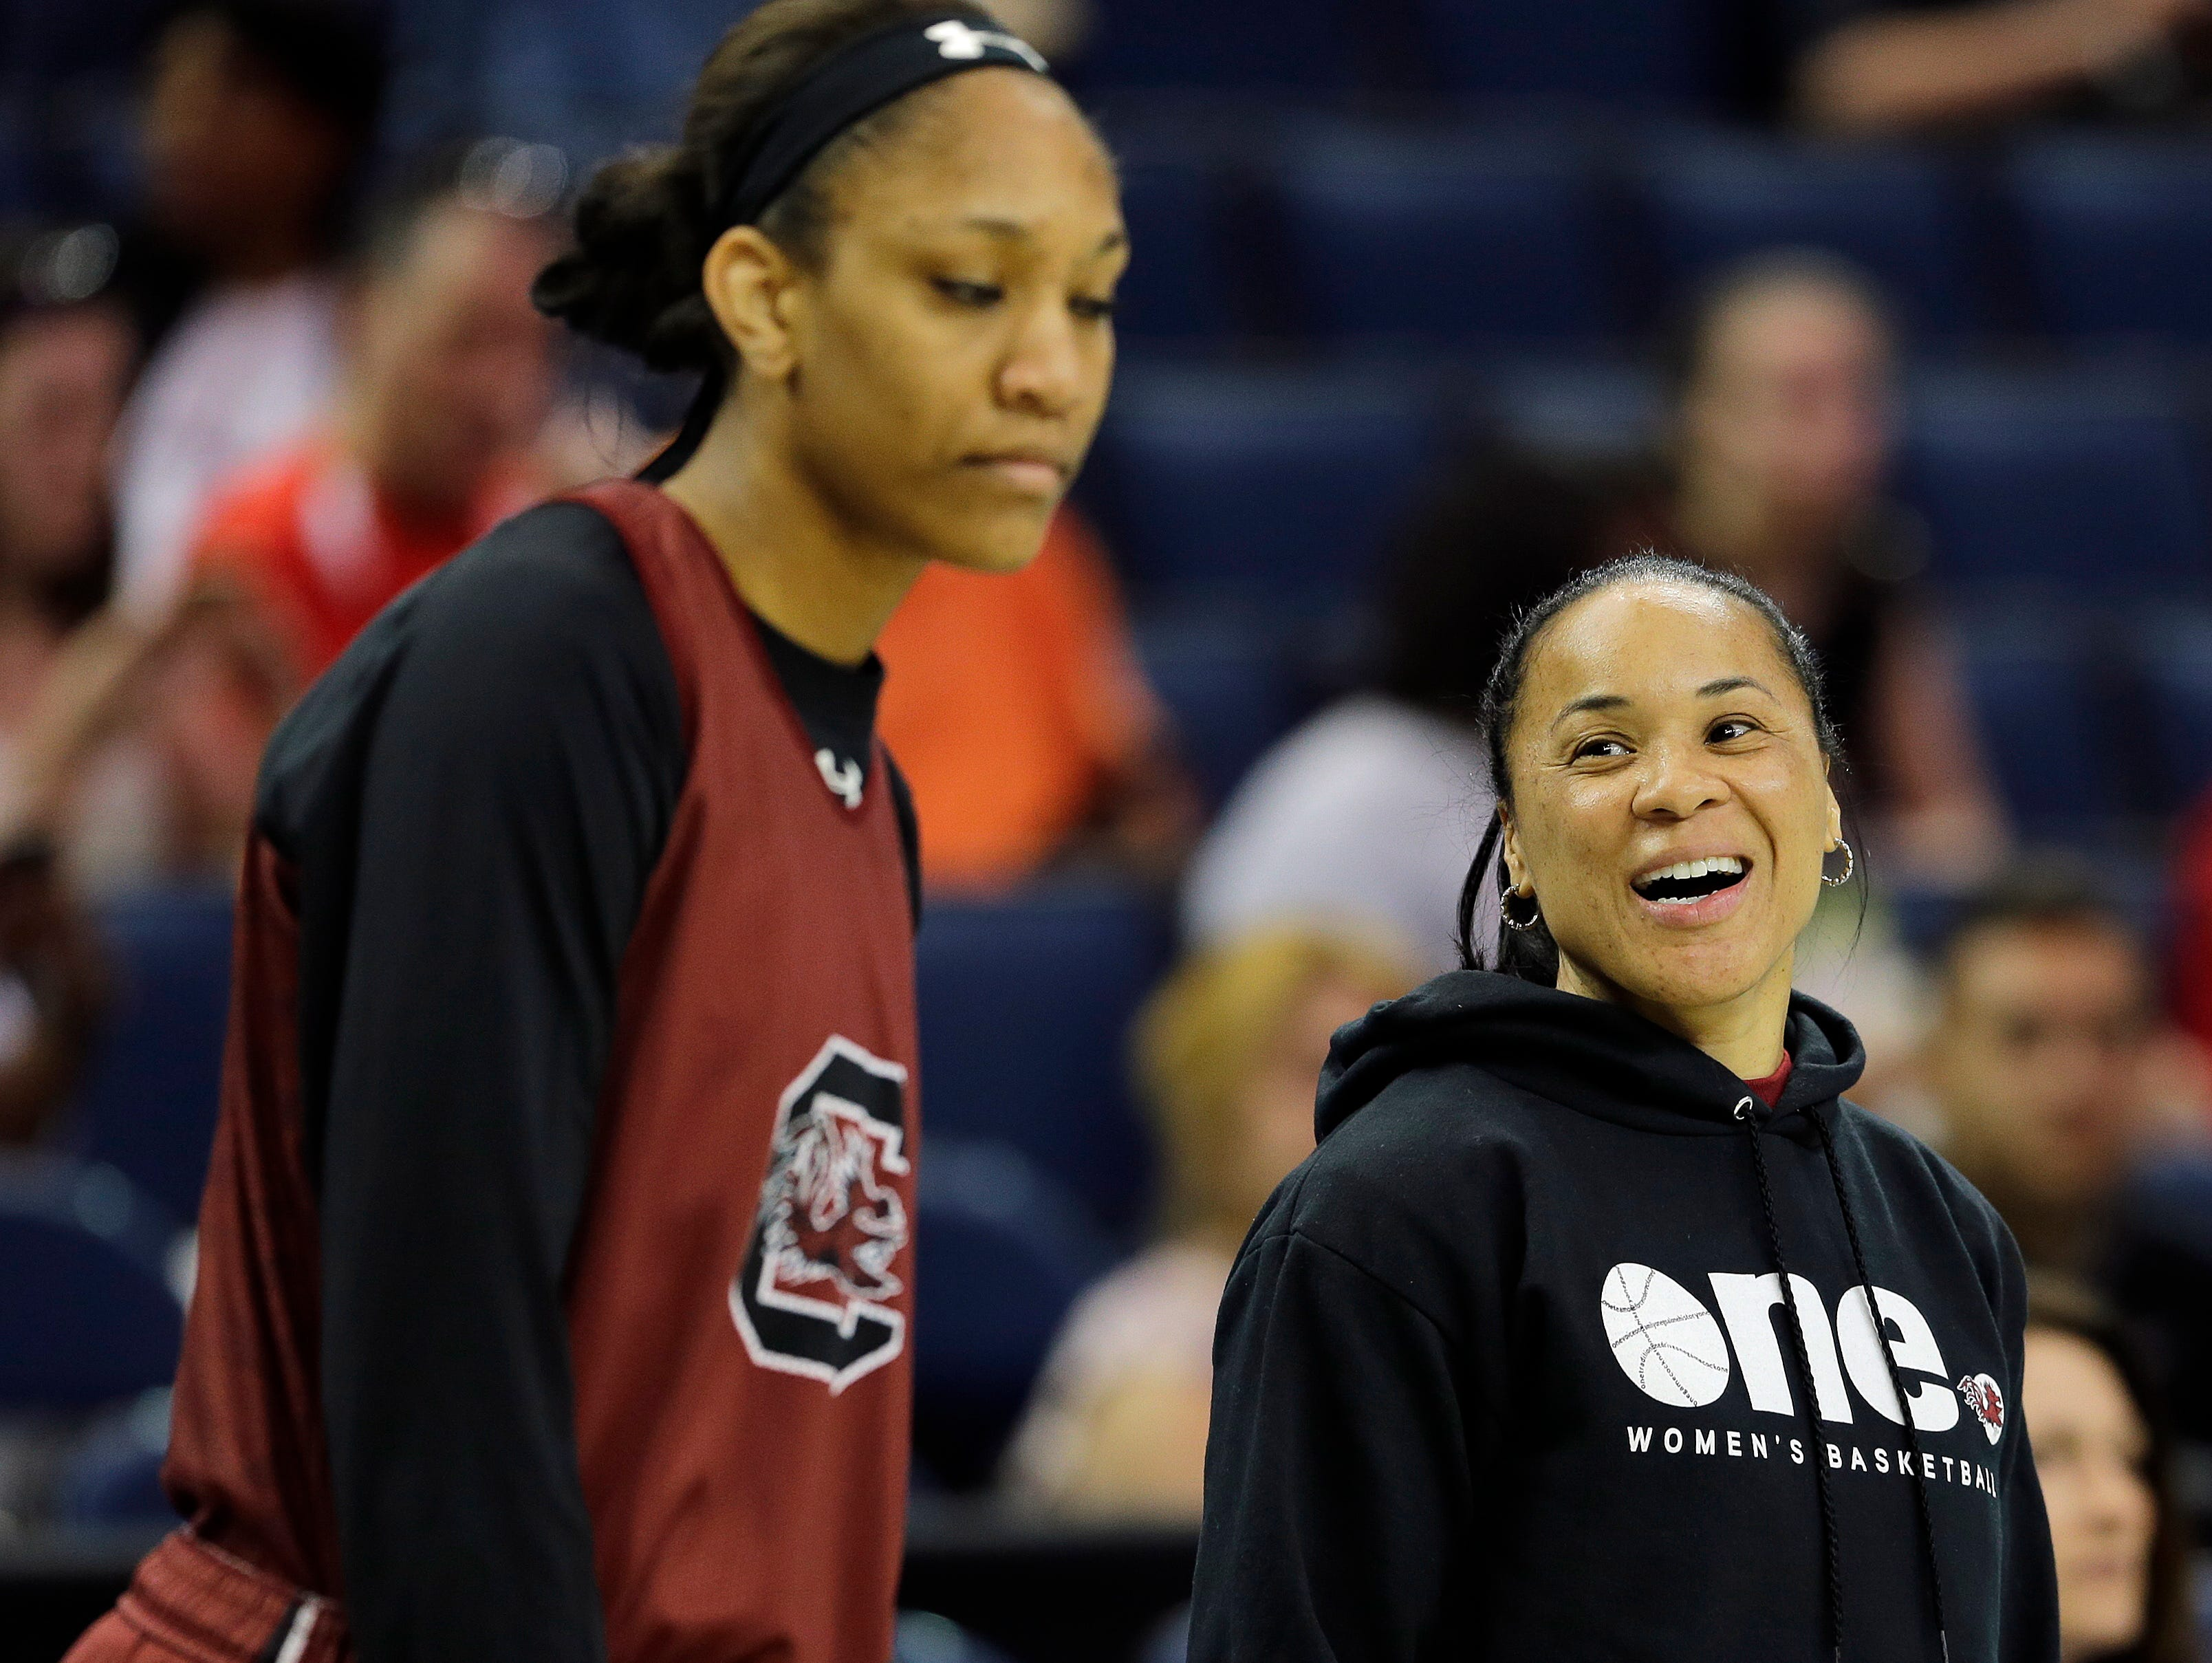 South Carolina head coach Dawn Staley speaks to South Carolina player A'ja Wilson during a practice session for the NCAA Final Four tournament women's college basketball semifinal game, Saturday, April 4, 2015, in Tampa, Fla. South Carolina plays Notre Dame Saturday in a semifinal game. (AP Photo/Chris O'Meara)